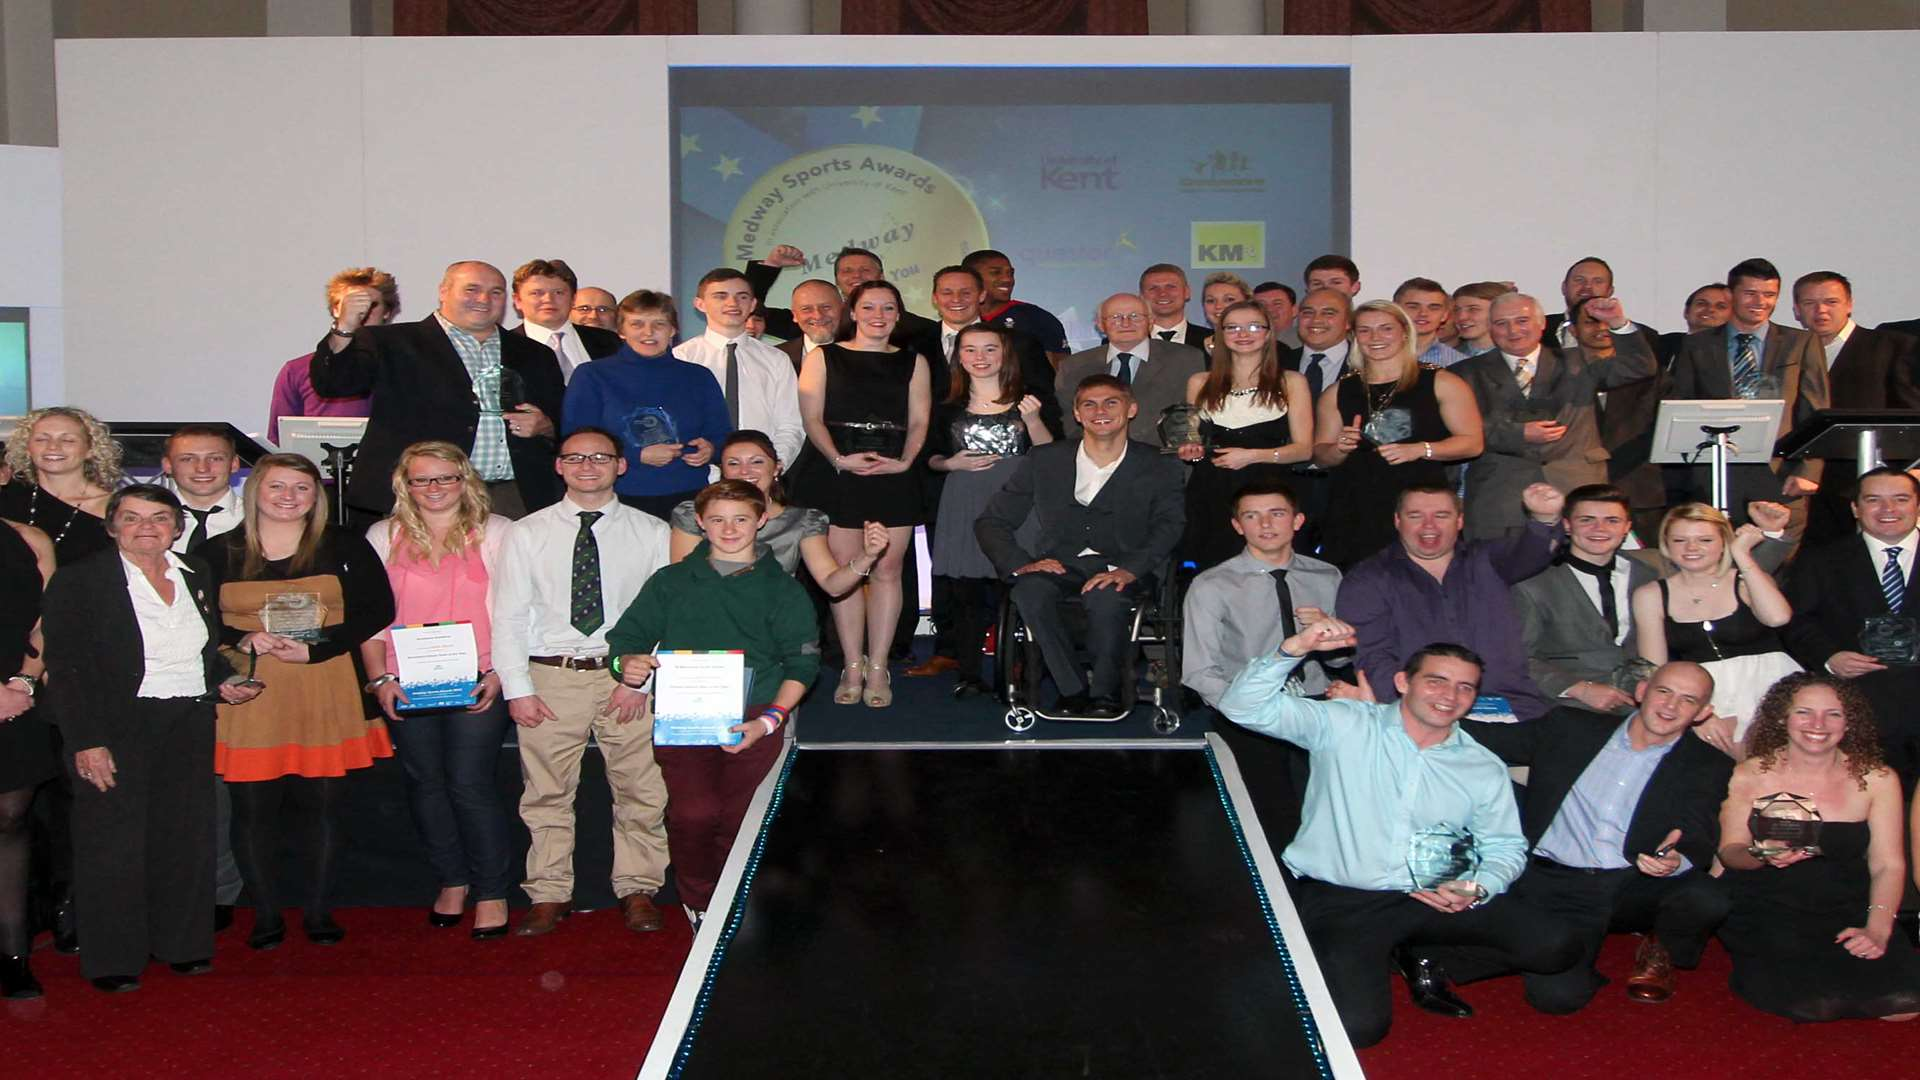 Some of the winners at the 2012 Medway Sports Awards. Picture: Darren Small